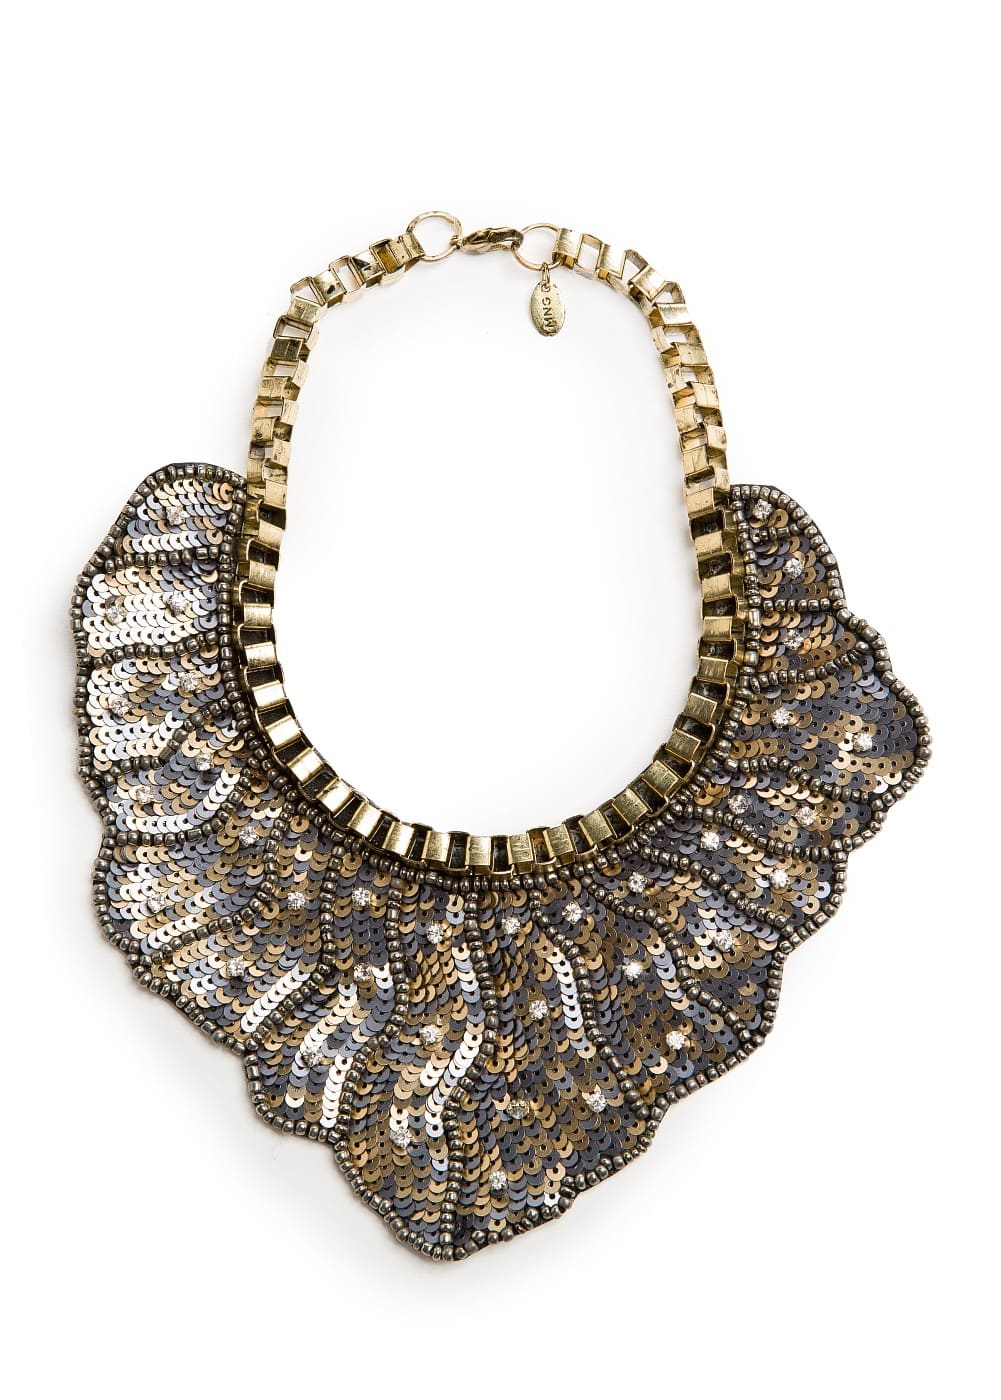 Sequined bib necklace